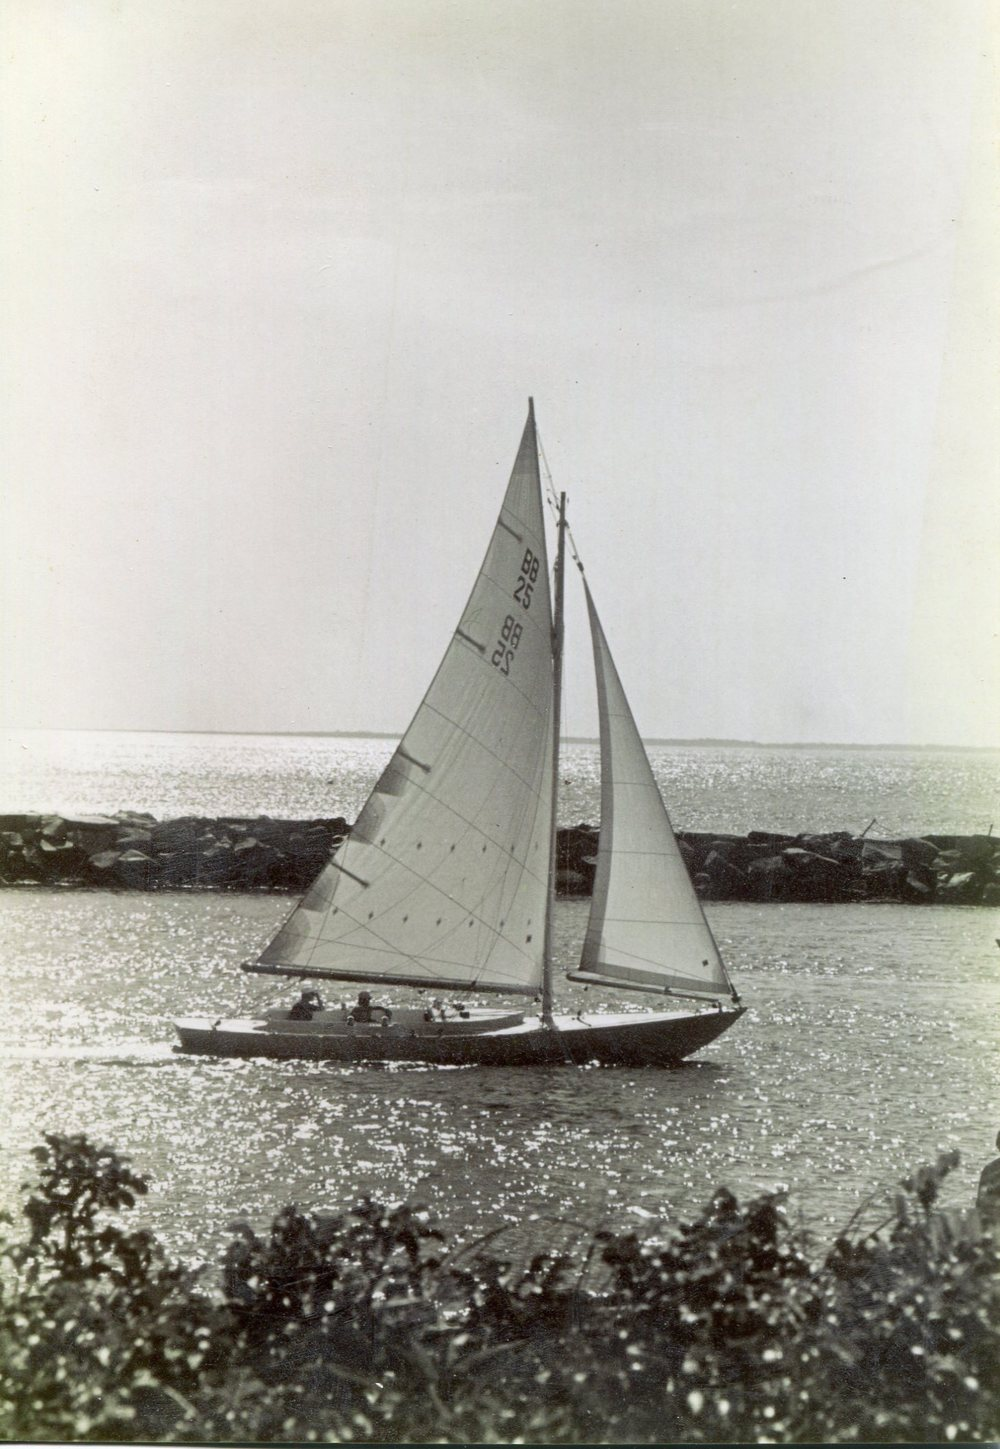 N.G. Herreshoff Buzzards Bay 25